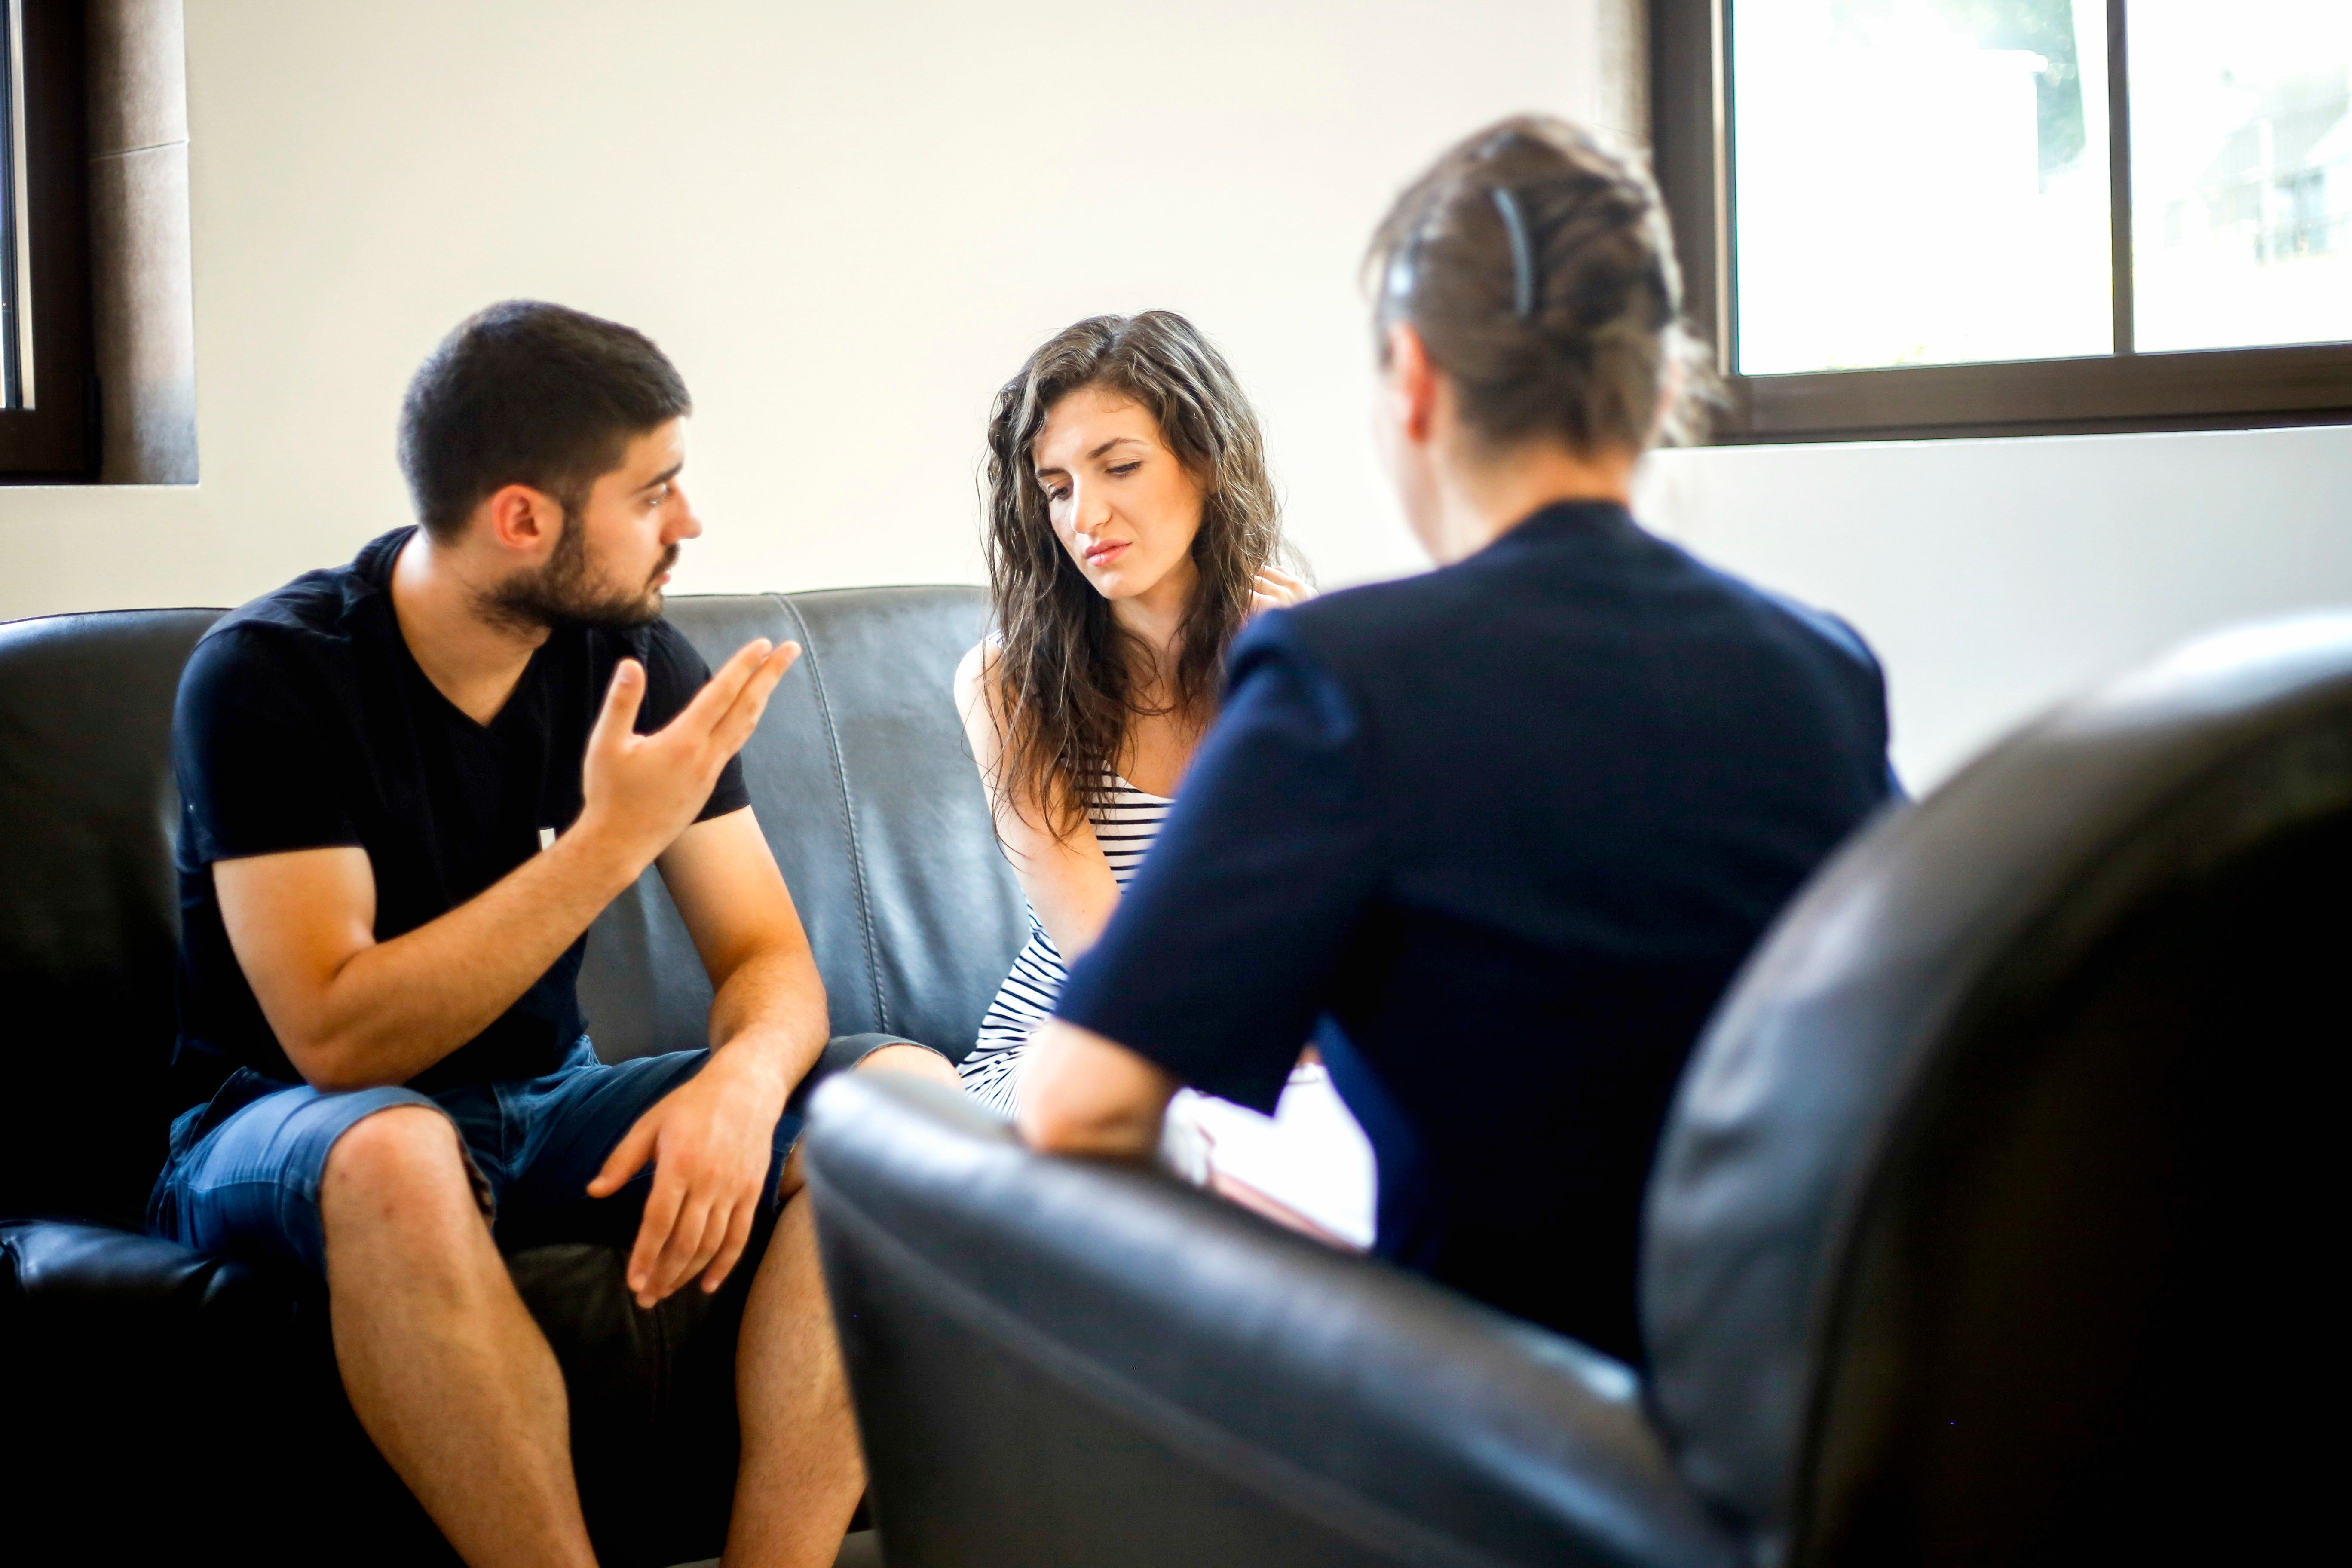 Fear of commitment after divorce